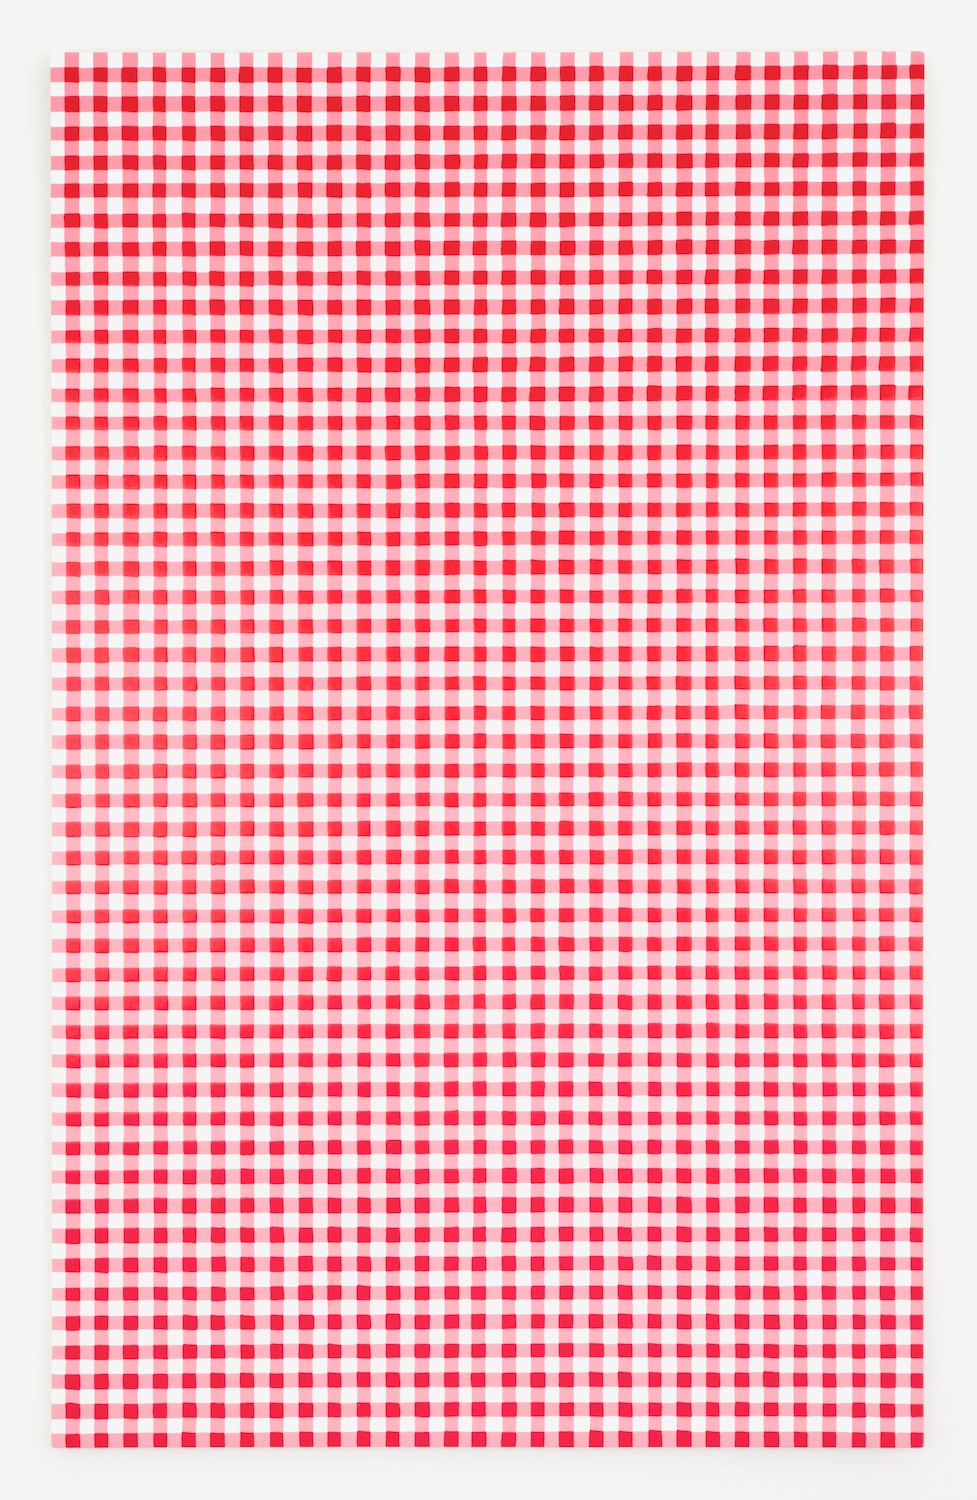 Michelle Grabner  Untitled  2012 Acrylic on panel 48h x 30w in MGrab257